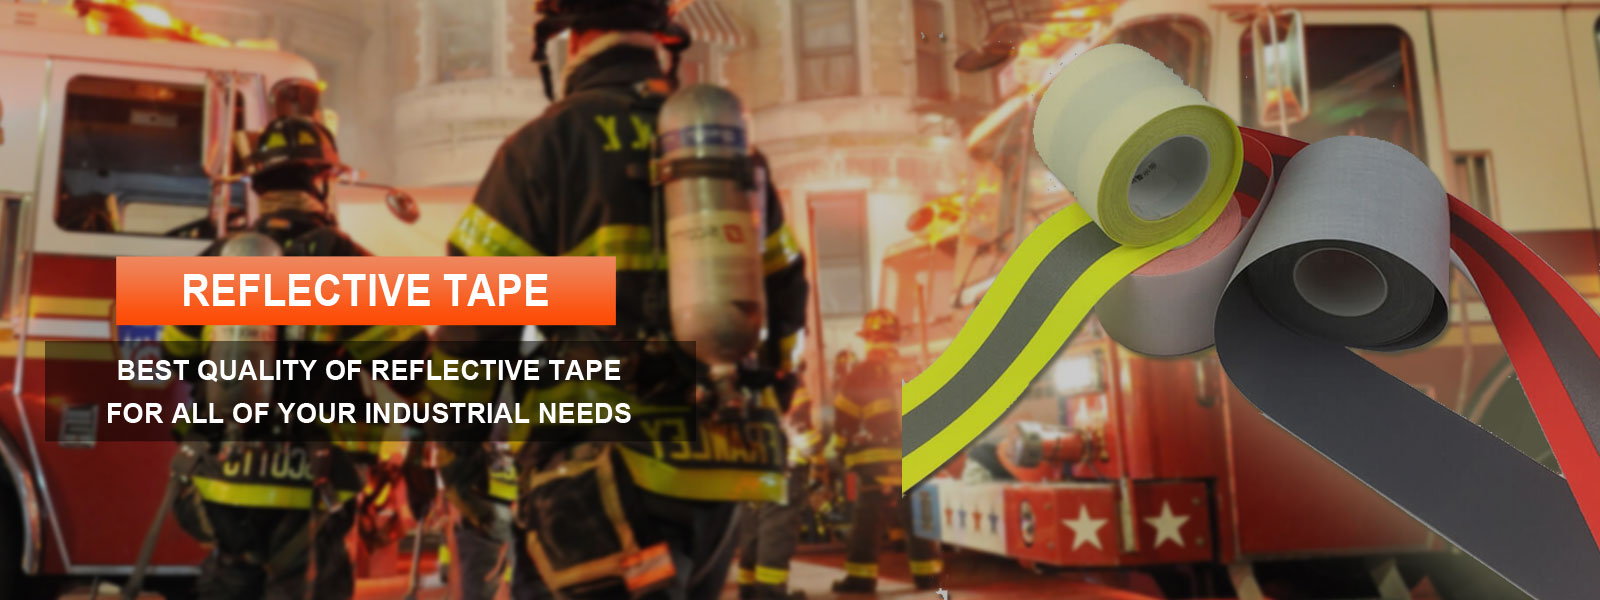 Reflective Tape Manufacturers in United states